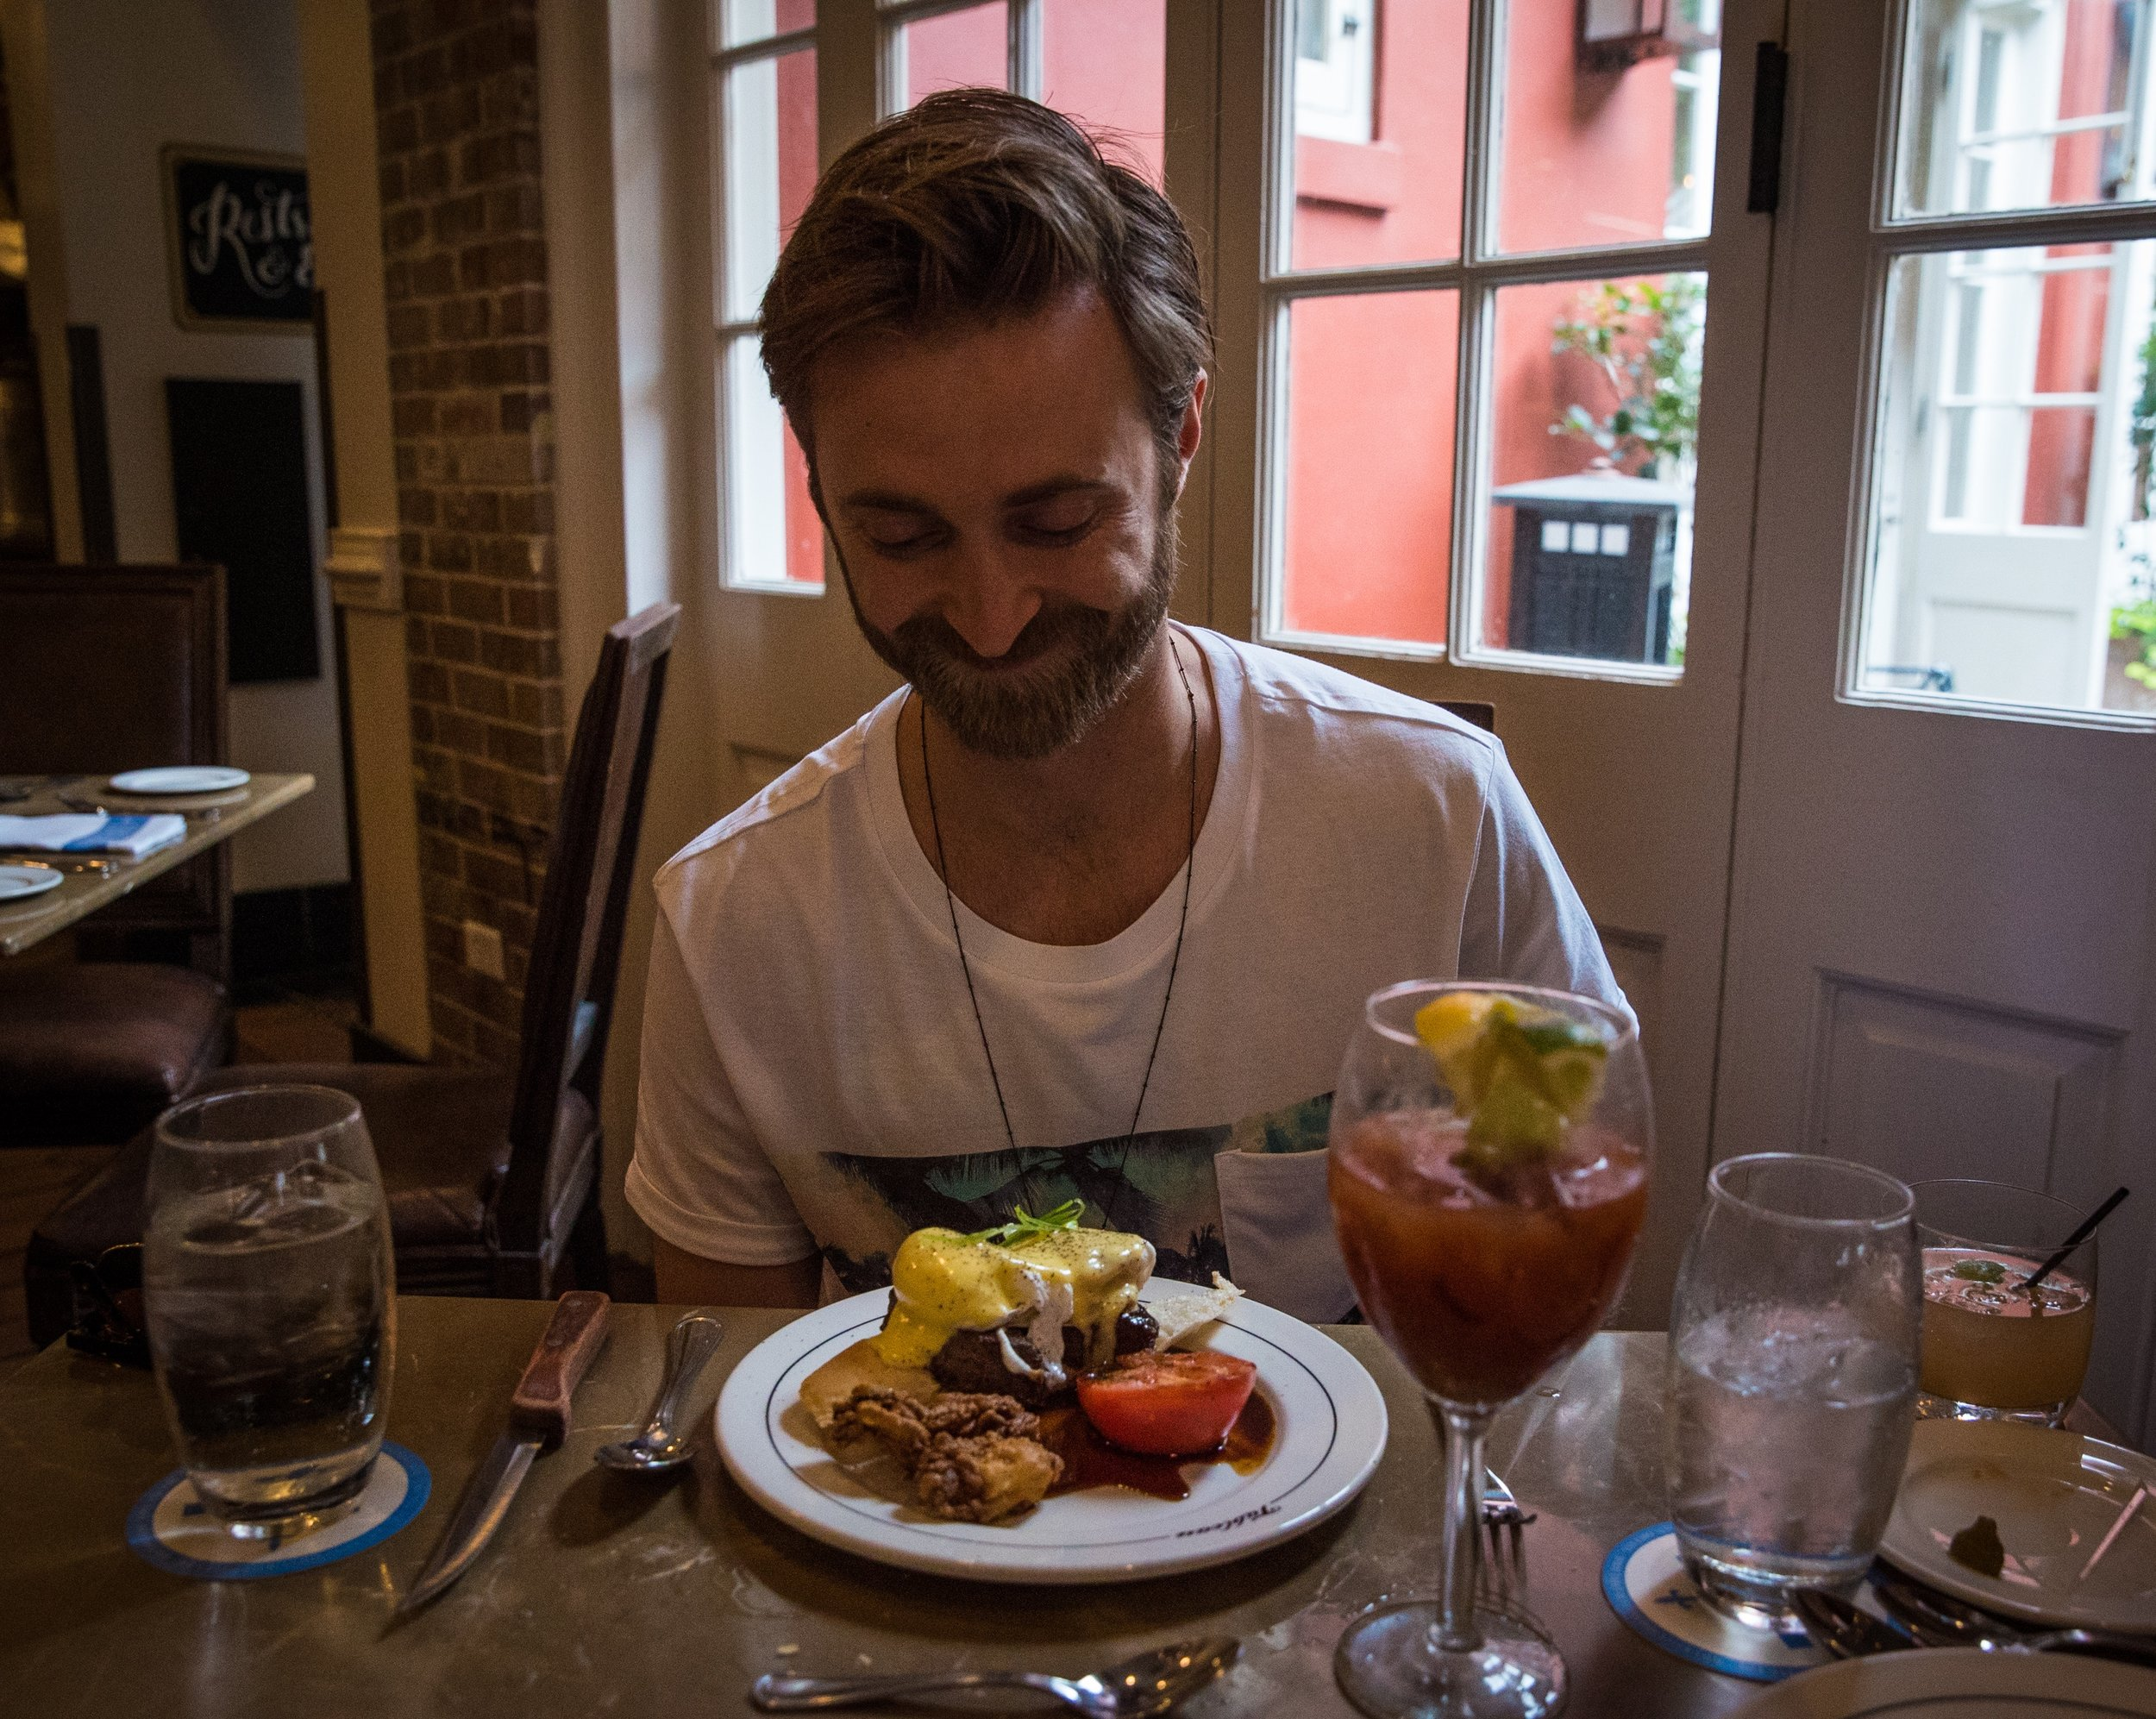 Ronnie was pretty happy when his food arrived: Steak and Eggs, with mouth-watering Fried Oysters!